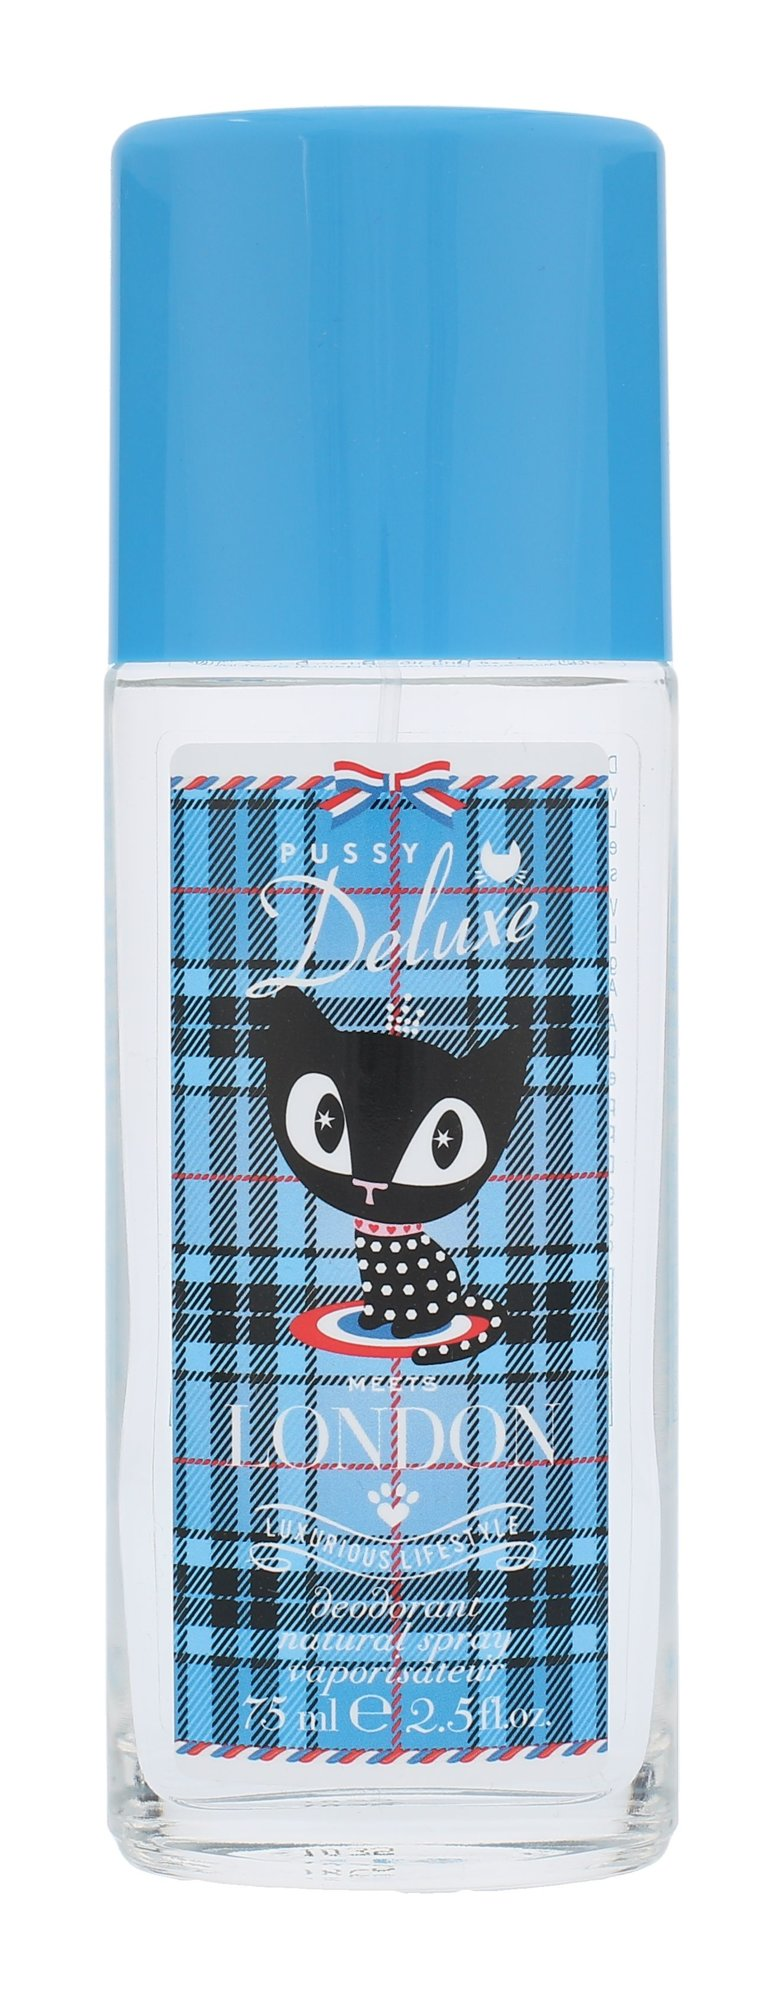 Pussy Deluxe Meets London Deodorant 75ml